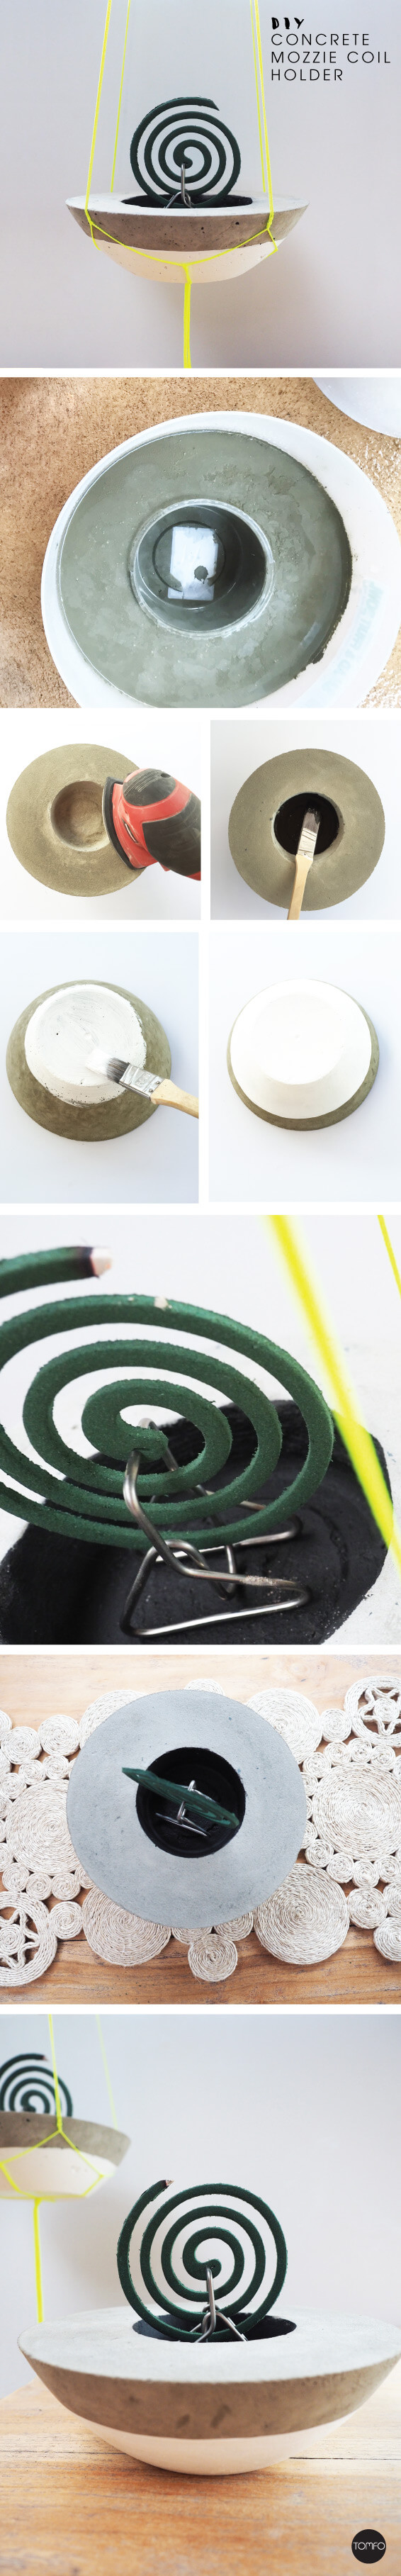 DIY-Concrete-Mozzie-Coil-holders-tutorial-Tomfo